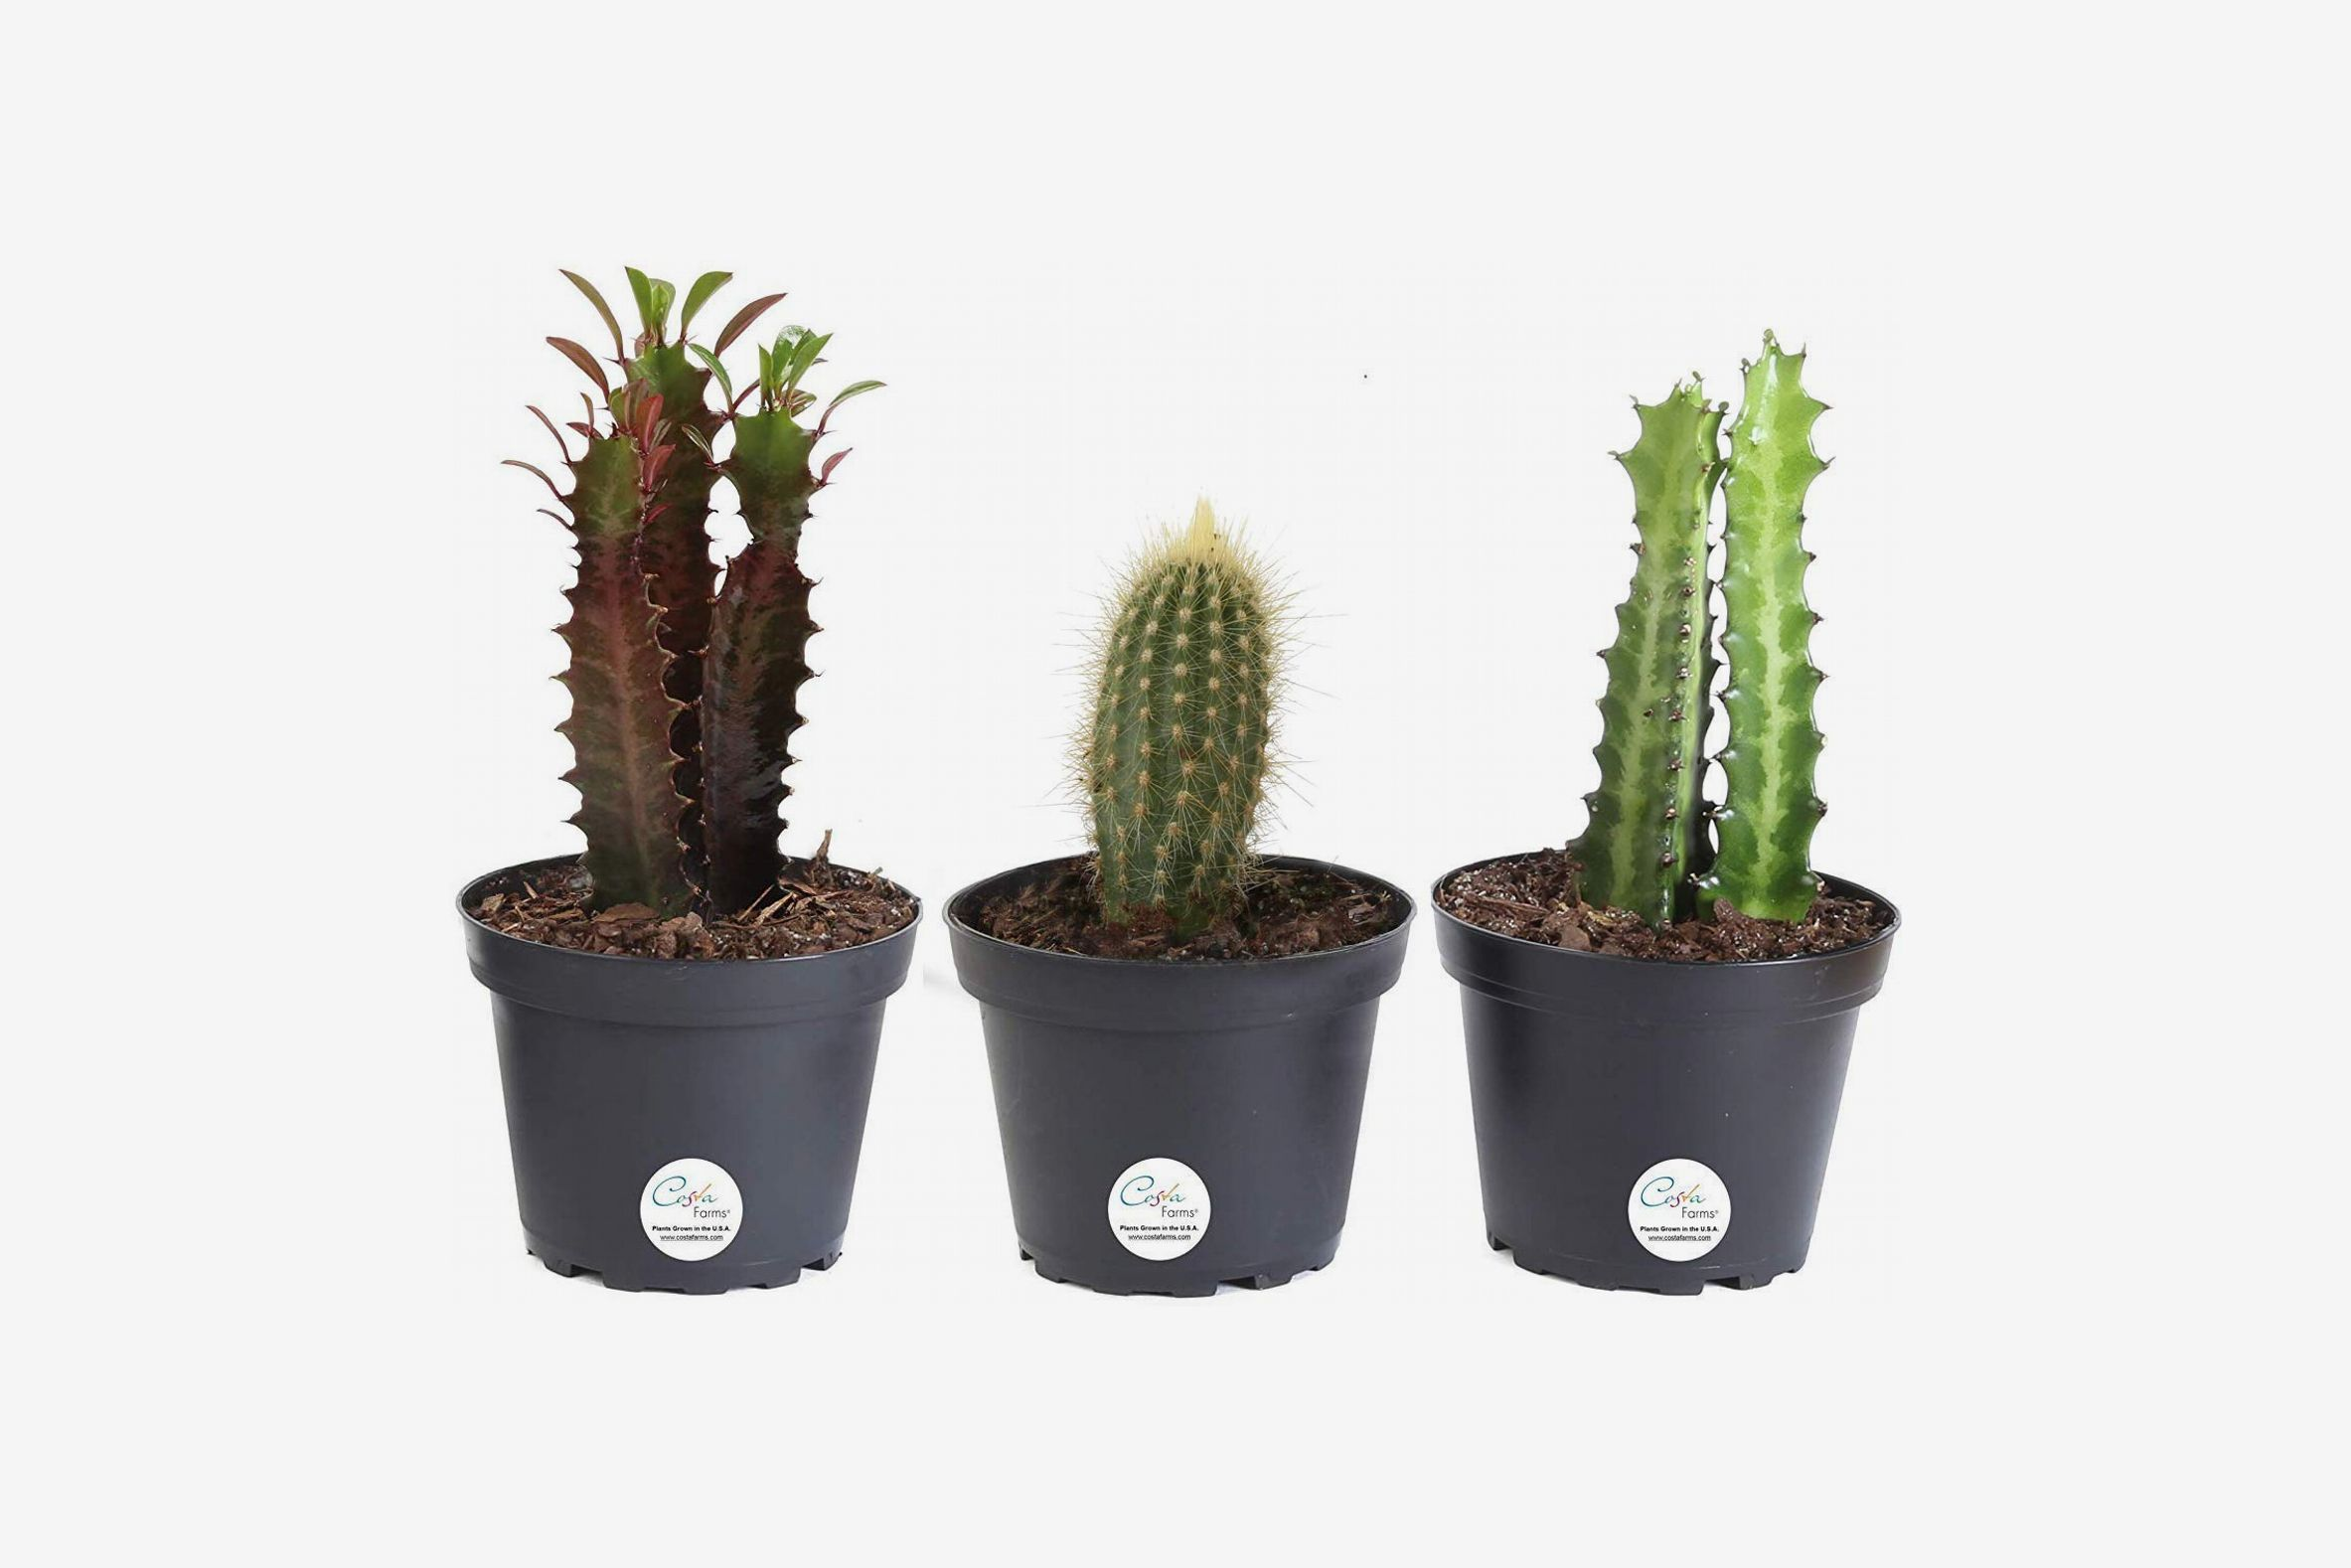 Costa Farms 3-Pack Assortment Euphorbia Cactus, 7 to 10-Inches Tall, Ships in Grower Pot